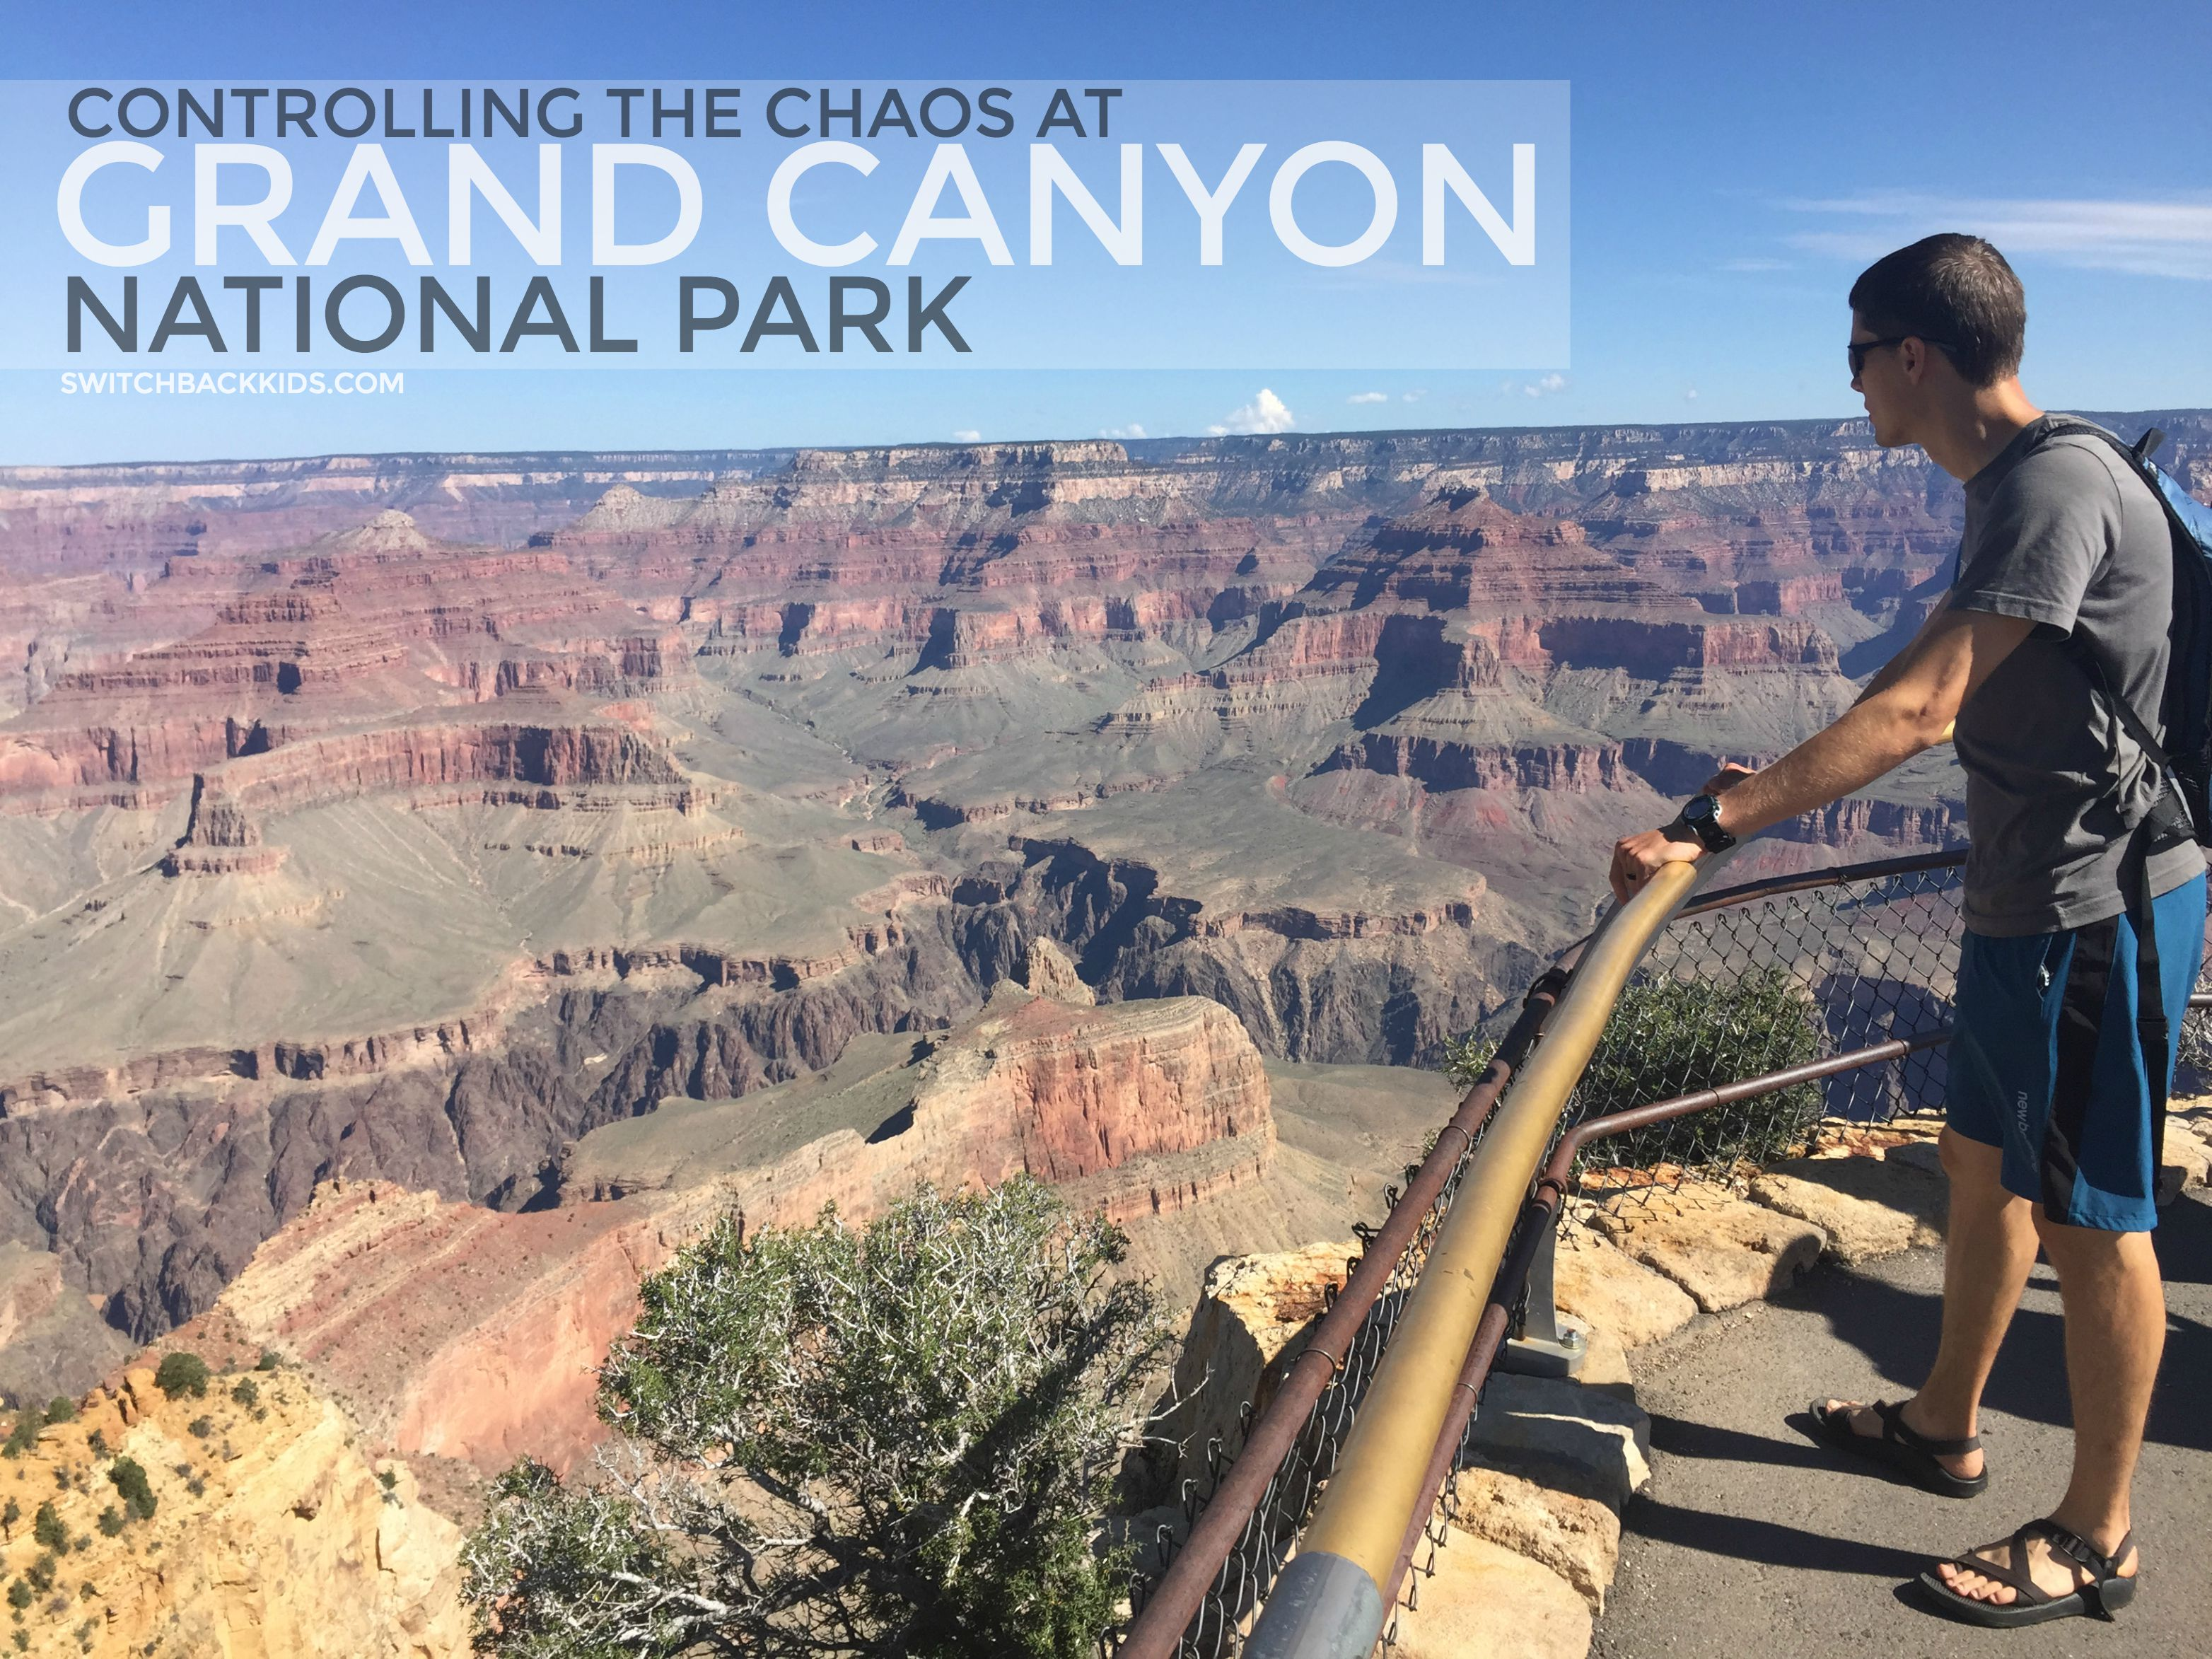 VIDEO: Grand Canyon National Park